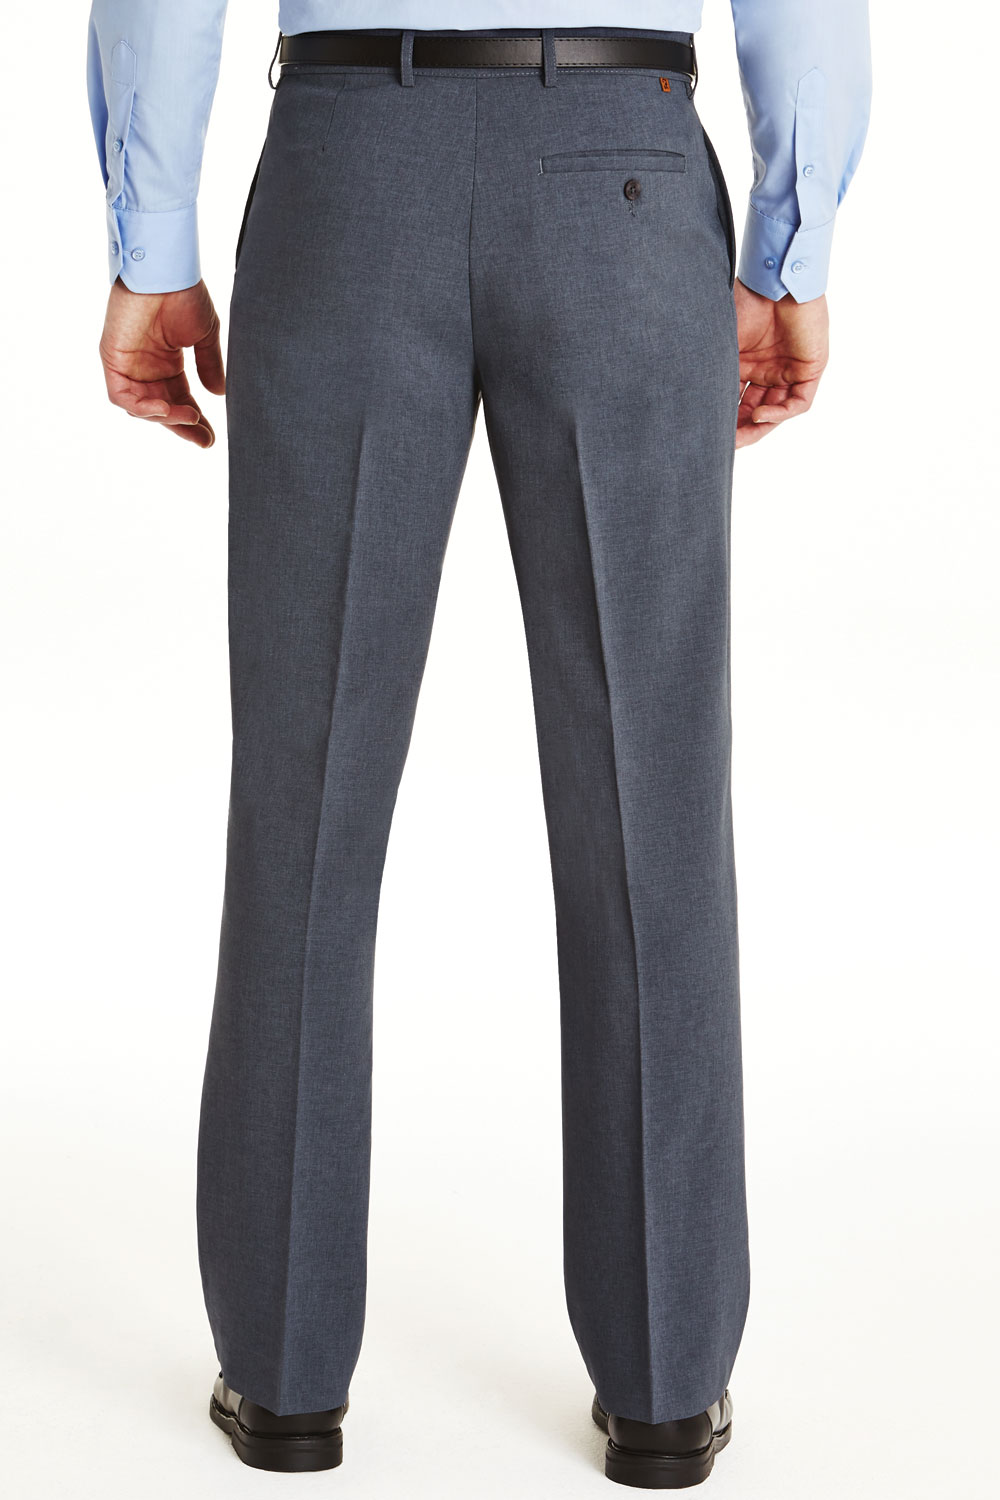 Mens-Farah-Slant-Pocket-Formal-Classic-Trouser-Pants thumbnail 3